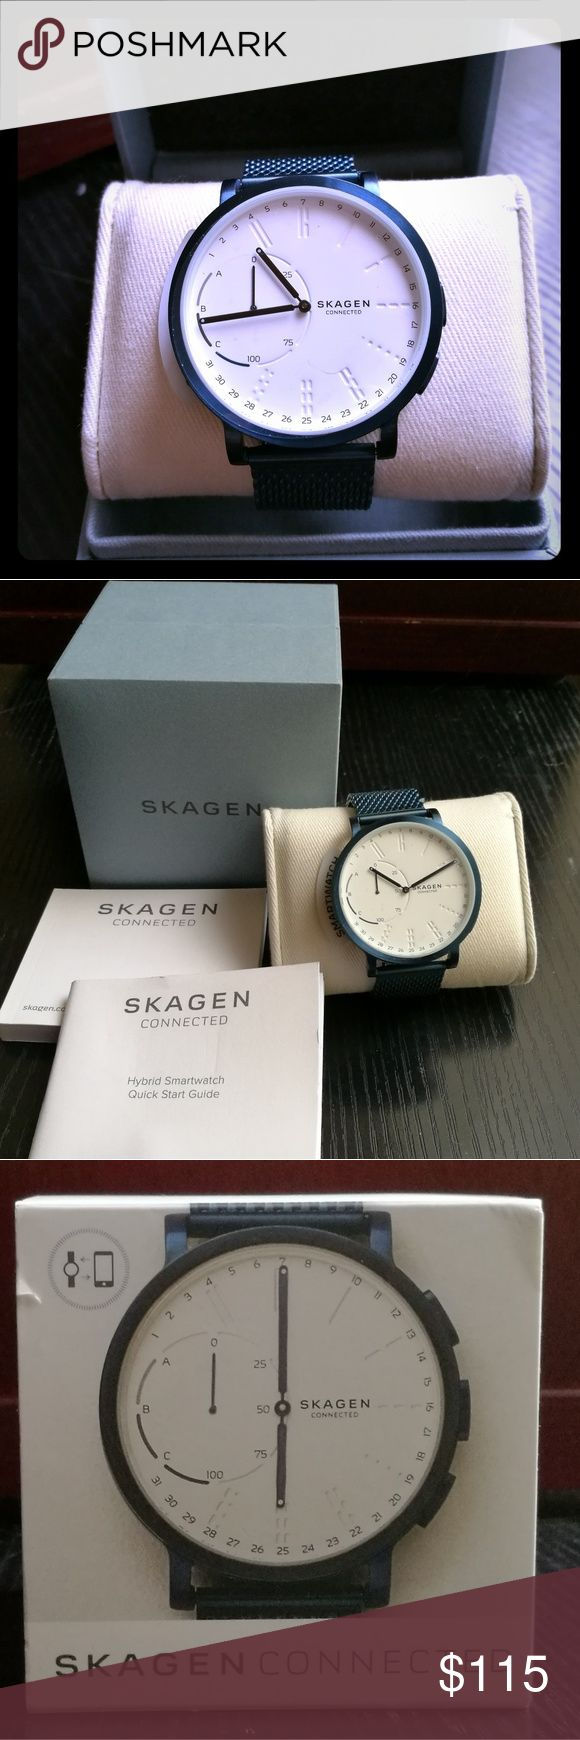 Skagen Connected Hybrid Smartwatch NWT Tracks activity and sleep patterns.   Does show phone notifications from the ABC dial on left side. Section will light up with a notification. Works with the Skagen Connected app (available in Google play and Apple App store).   Specs:  - 42mm case; 20mm band width - Fold-over clasp closure - Three-hand quartz movement - Day and date function - Android 4.4+, IOS 8+ and iPhone 5+ compatible - Bluetooth enabled Skagen Accessories Watches